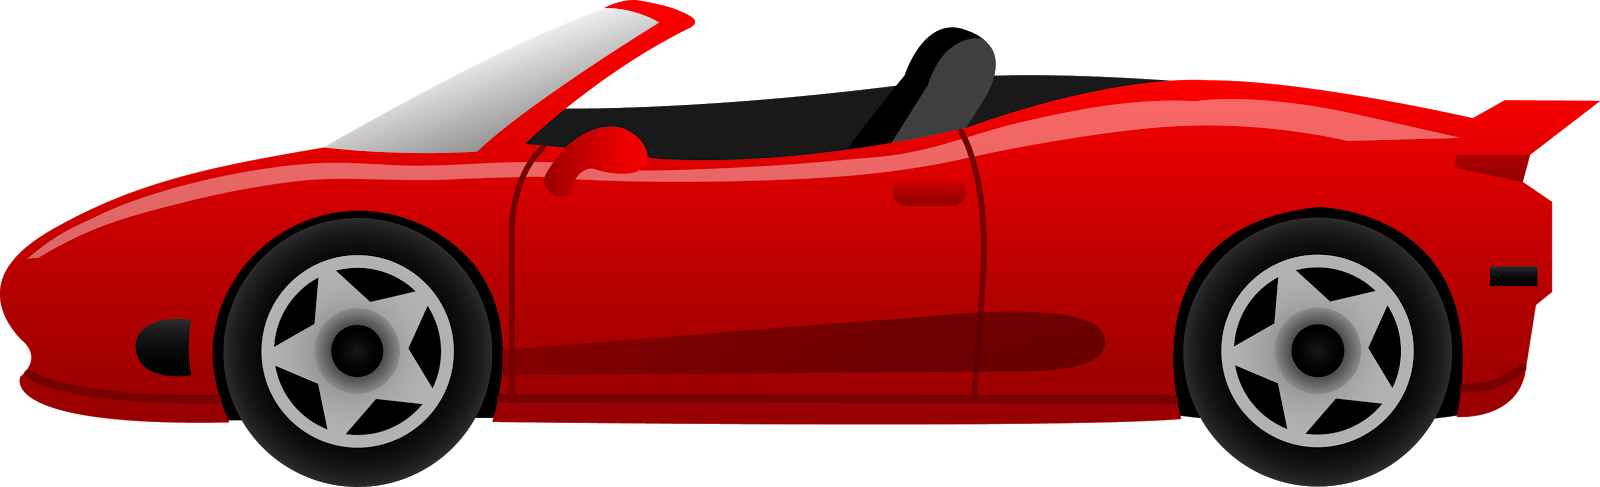 Cars transparent clip art. Collection of clipart